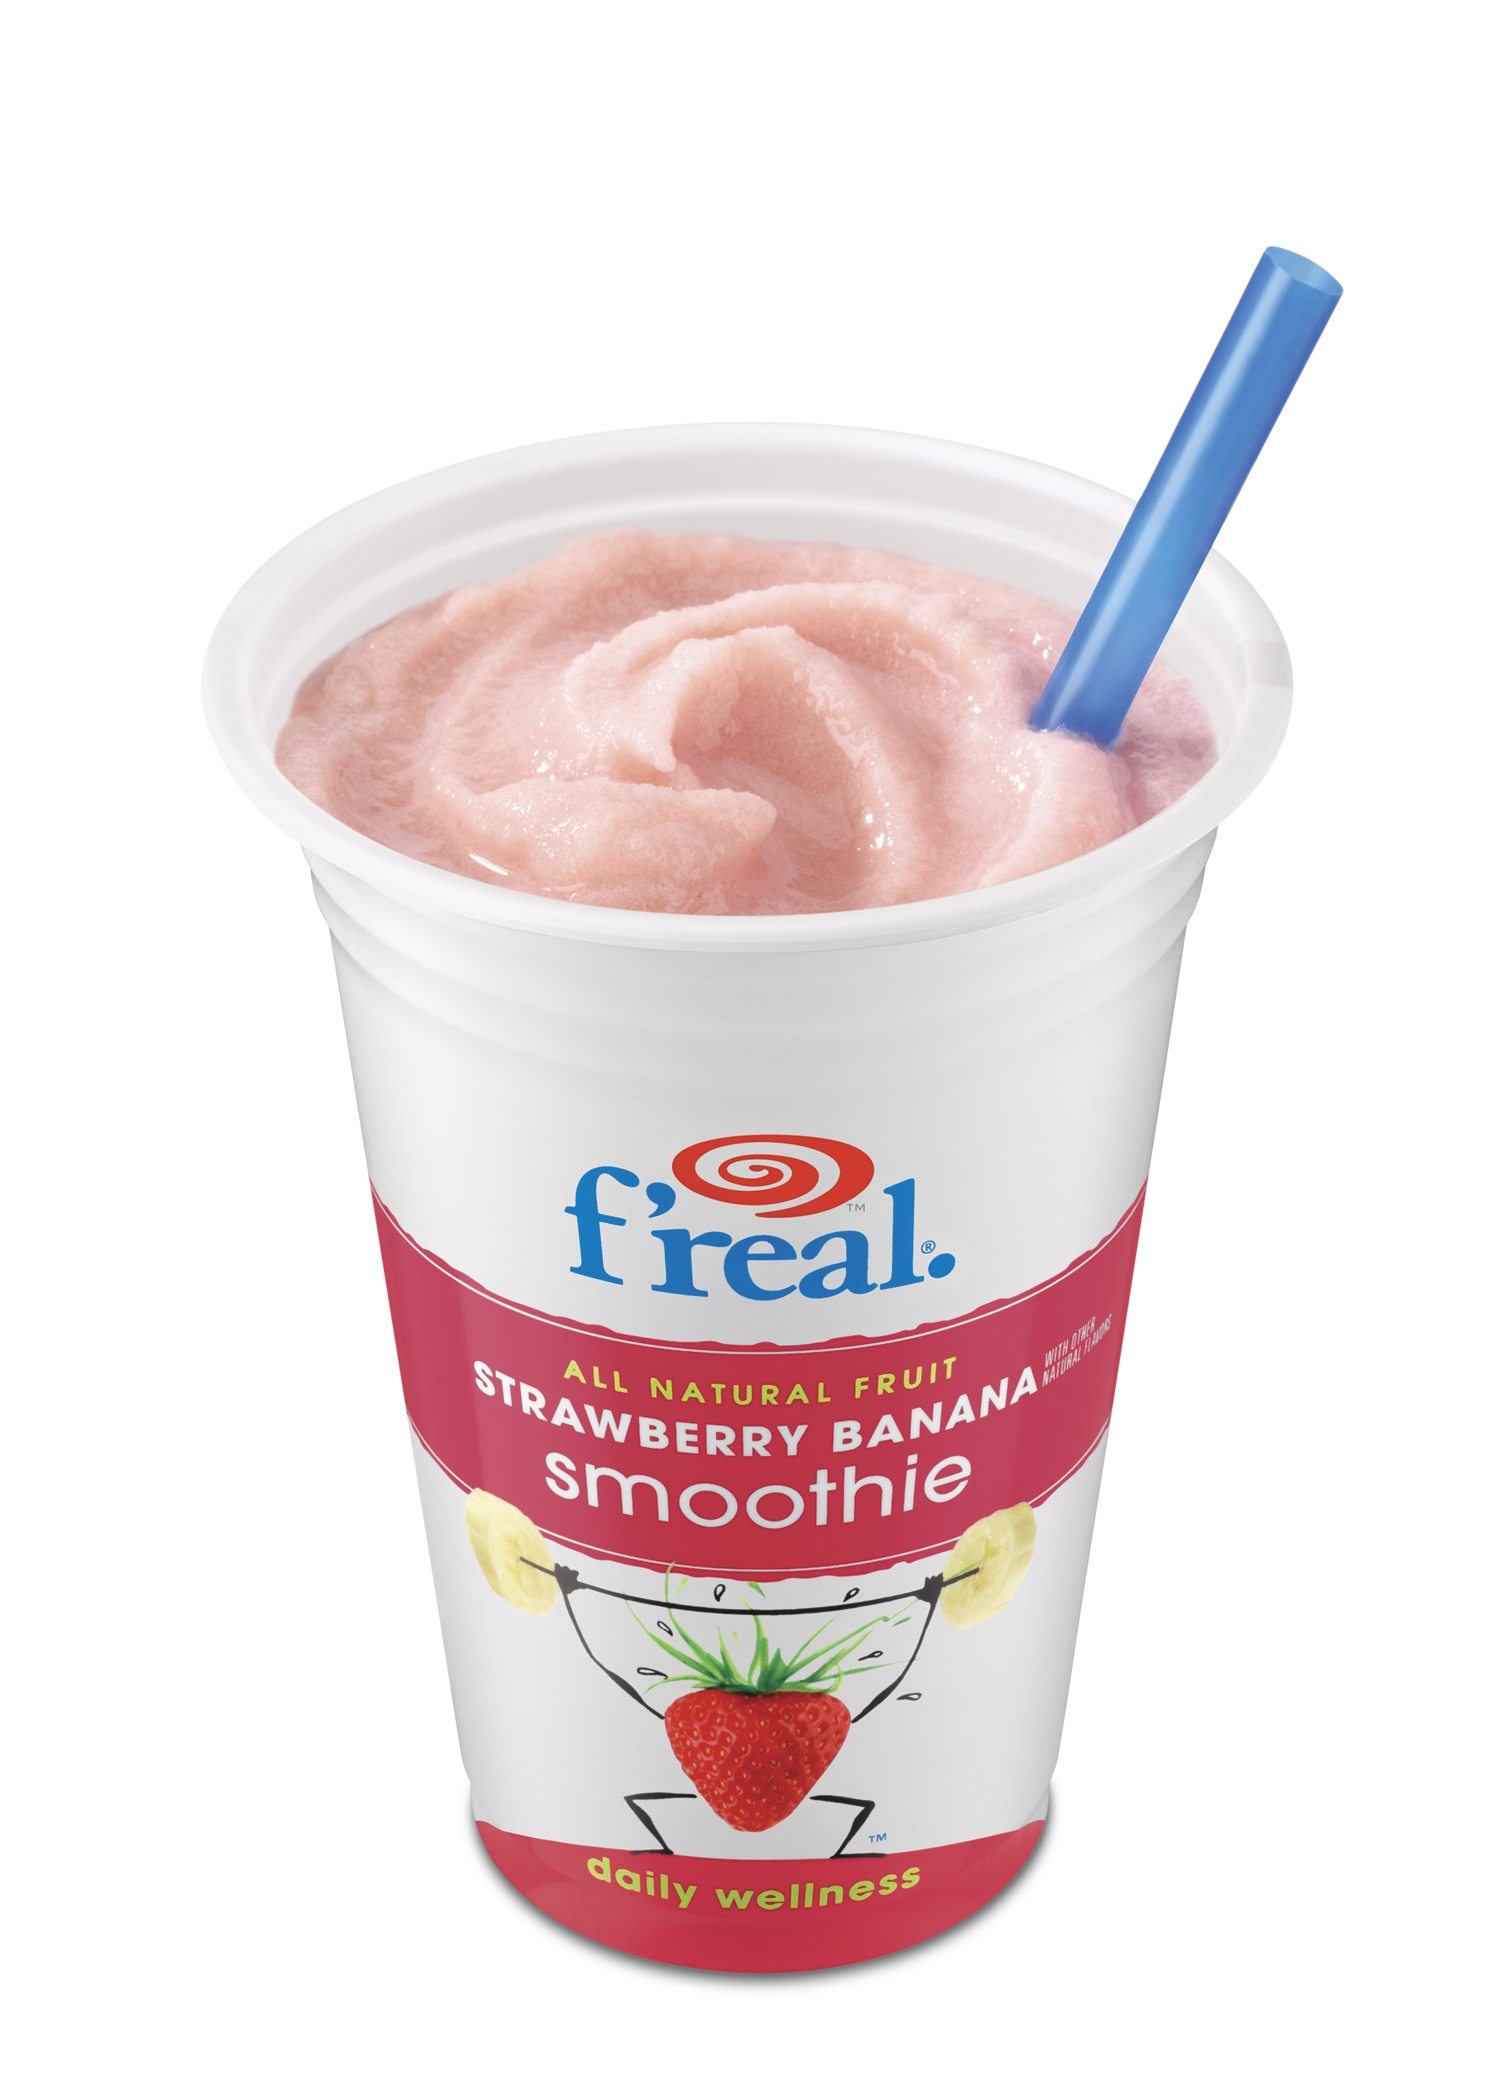 f'real® Strawberry-Banana Smoothies